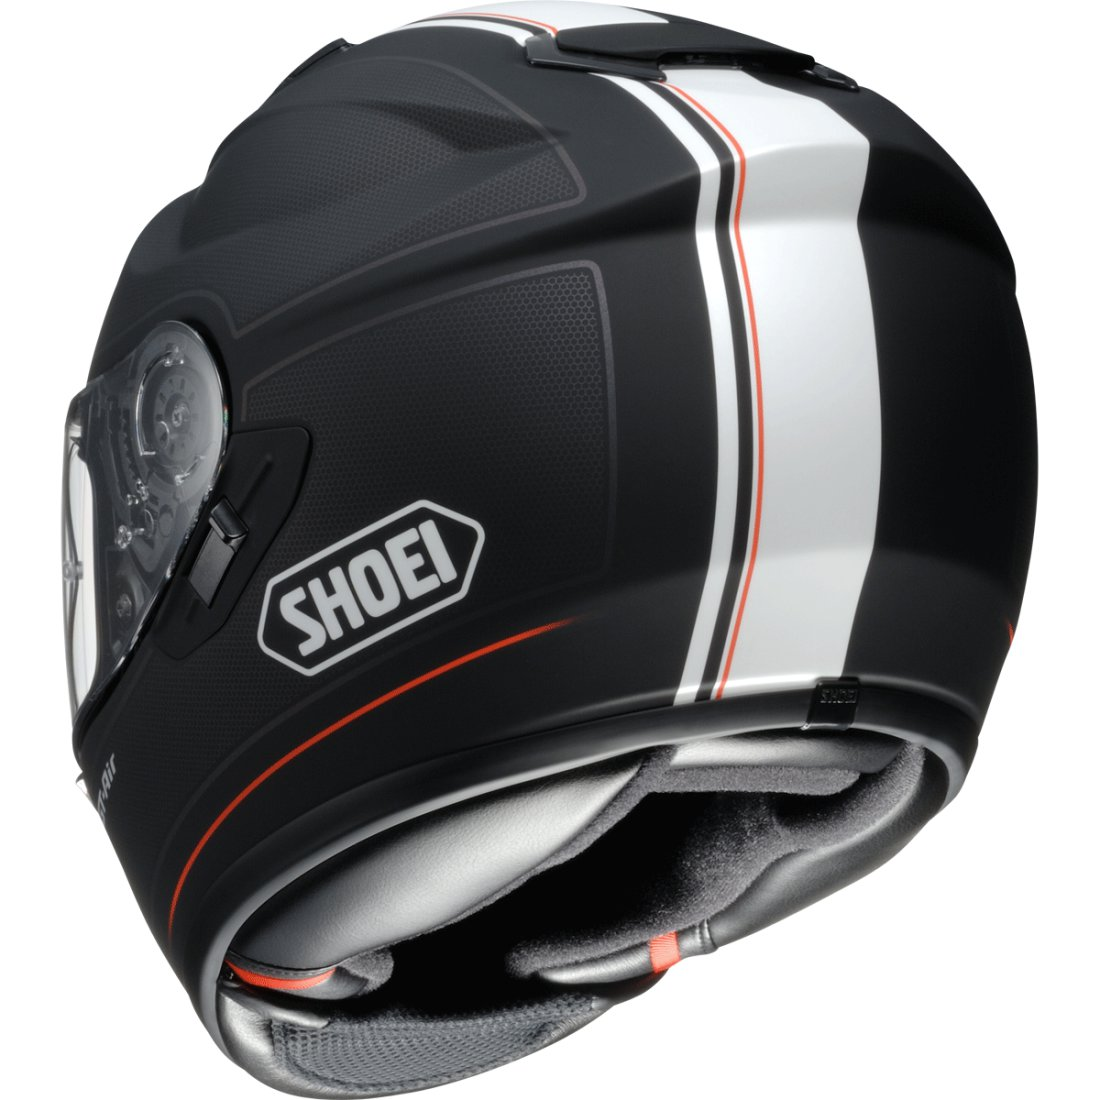 helmet shoei gt air wanderer tc 5 motocard. Black Bedroom Furniture Sets. Home Design Ideas